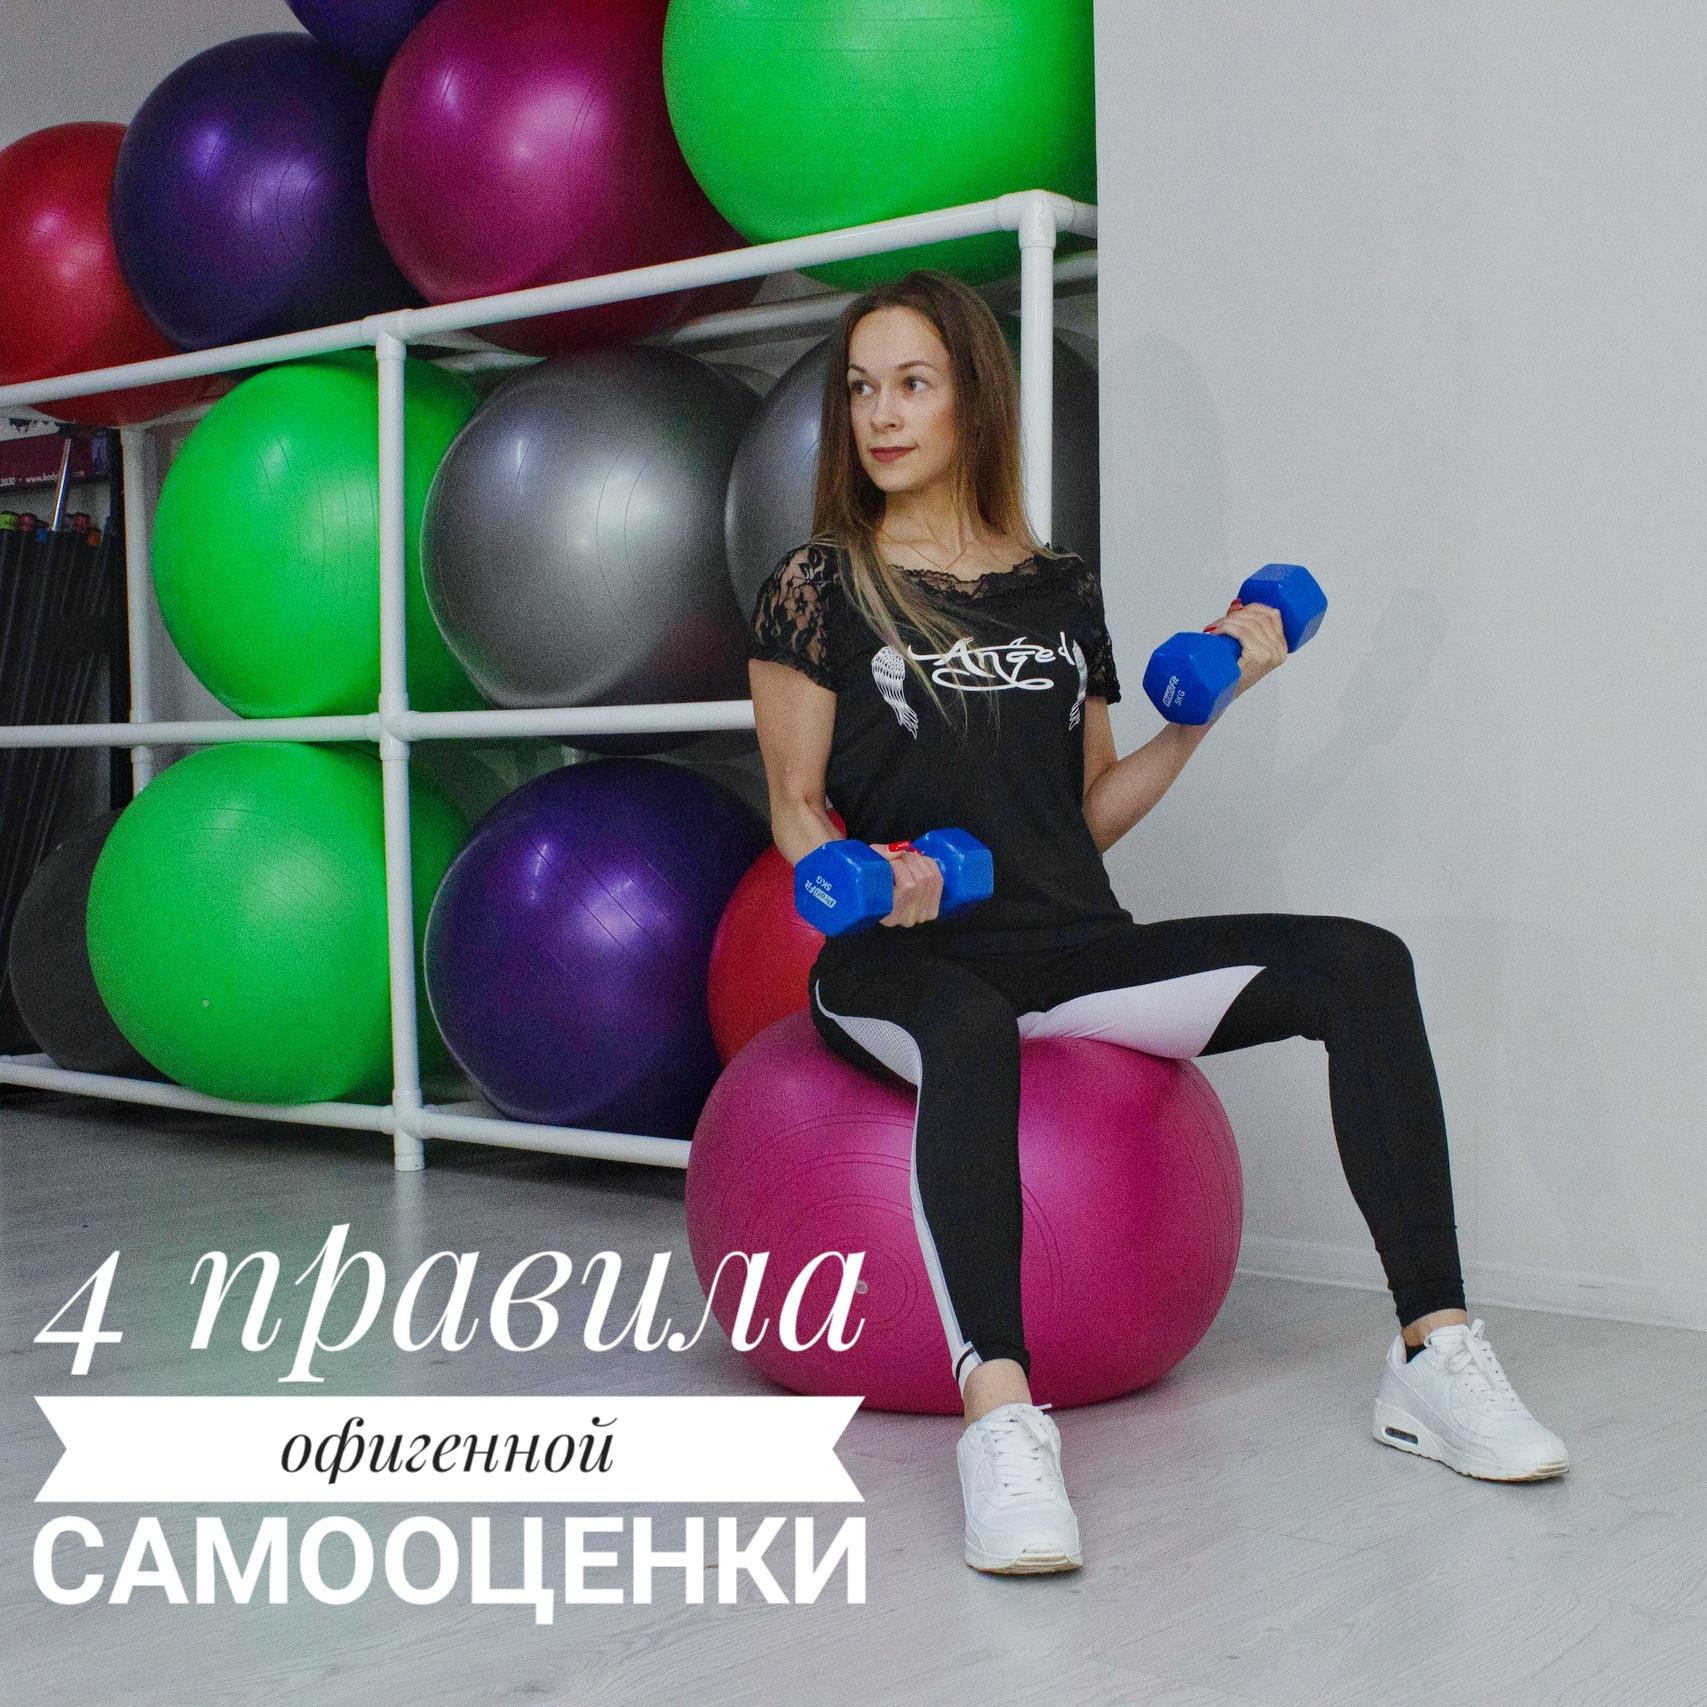 Picture with tags: Training, Sport, Girl